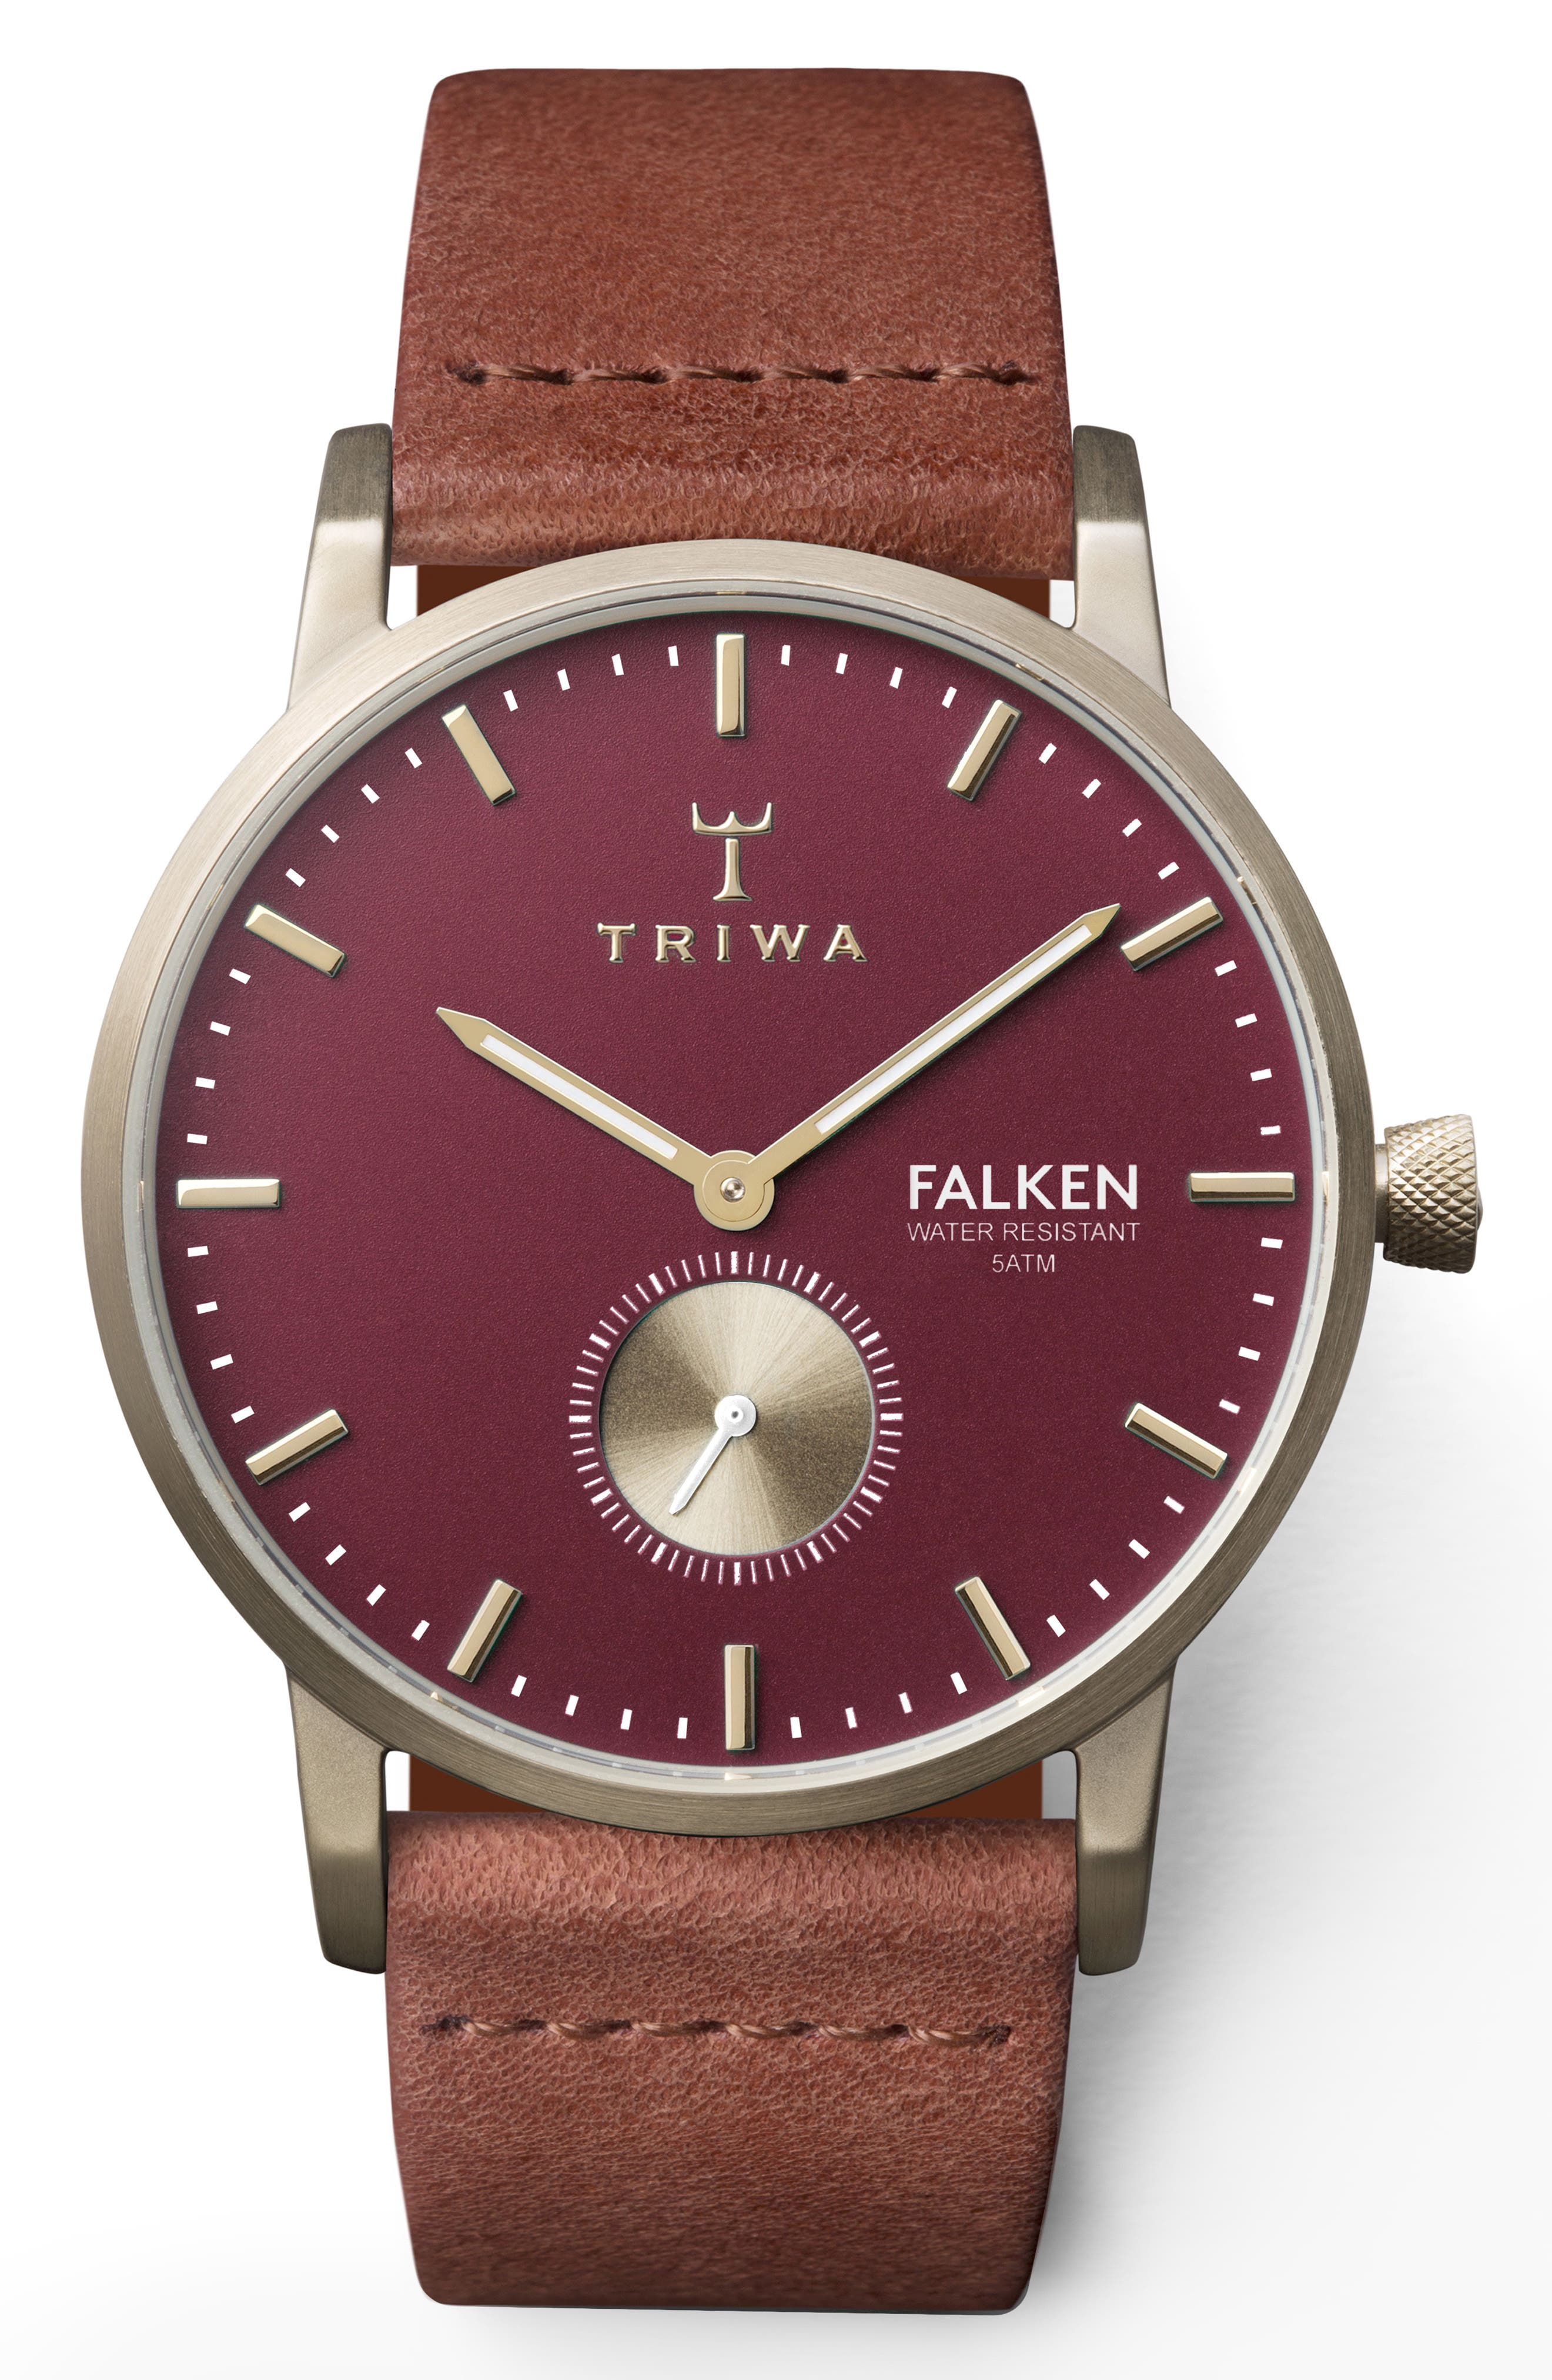 TRIWA Ruby Falken Leather Strap Watch, 38Mm in Brown/ Red/ Gold